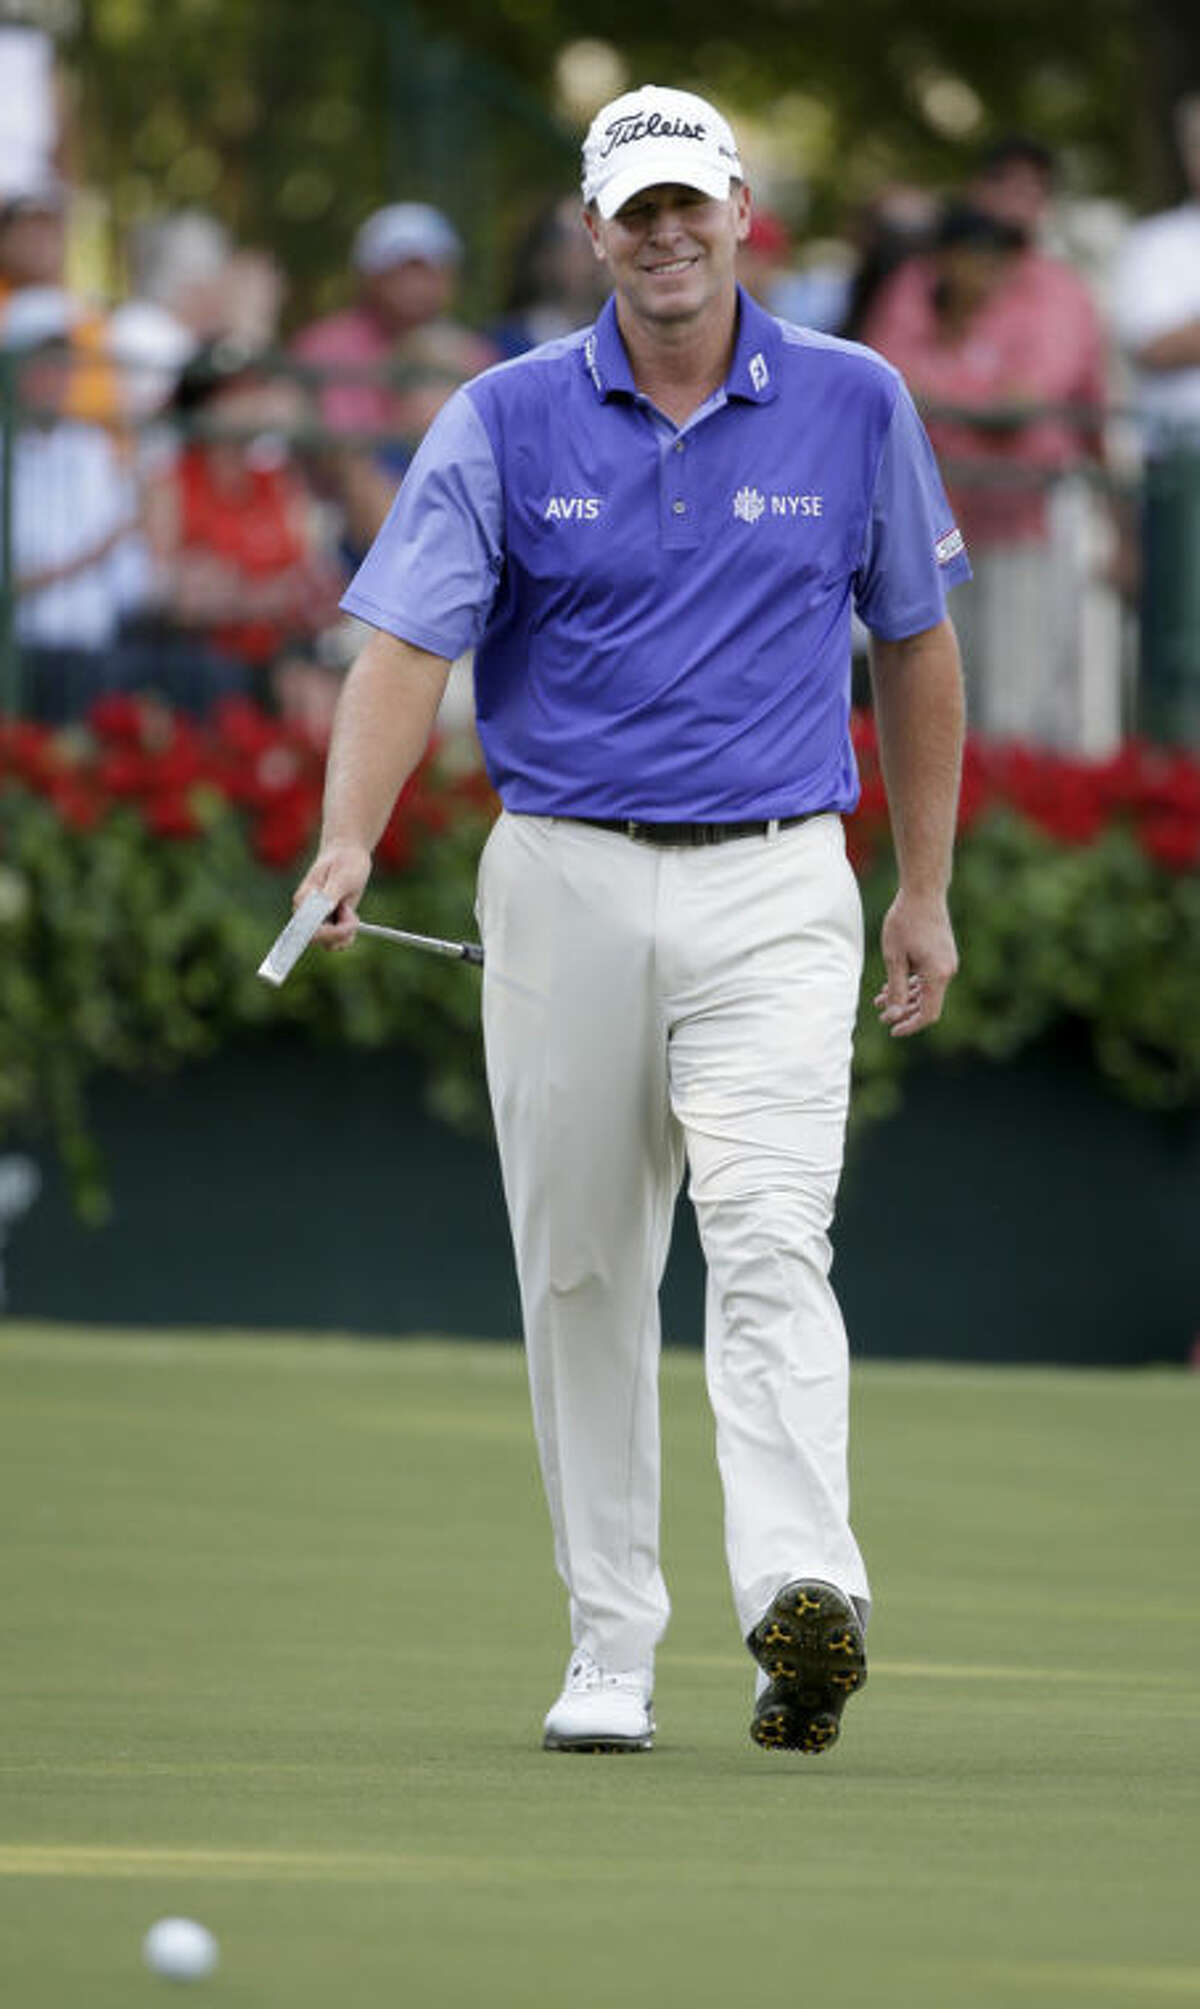 Steve Stricker smiles as he approaches his ball to putt on the 18th hole during the second round of the Tour Championship golf tournament at East Lake Golf Club in Atlanta, Friday, Sept. 20, 2013. (AP Photo/David Goldman)